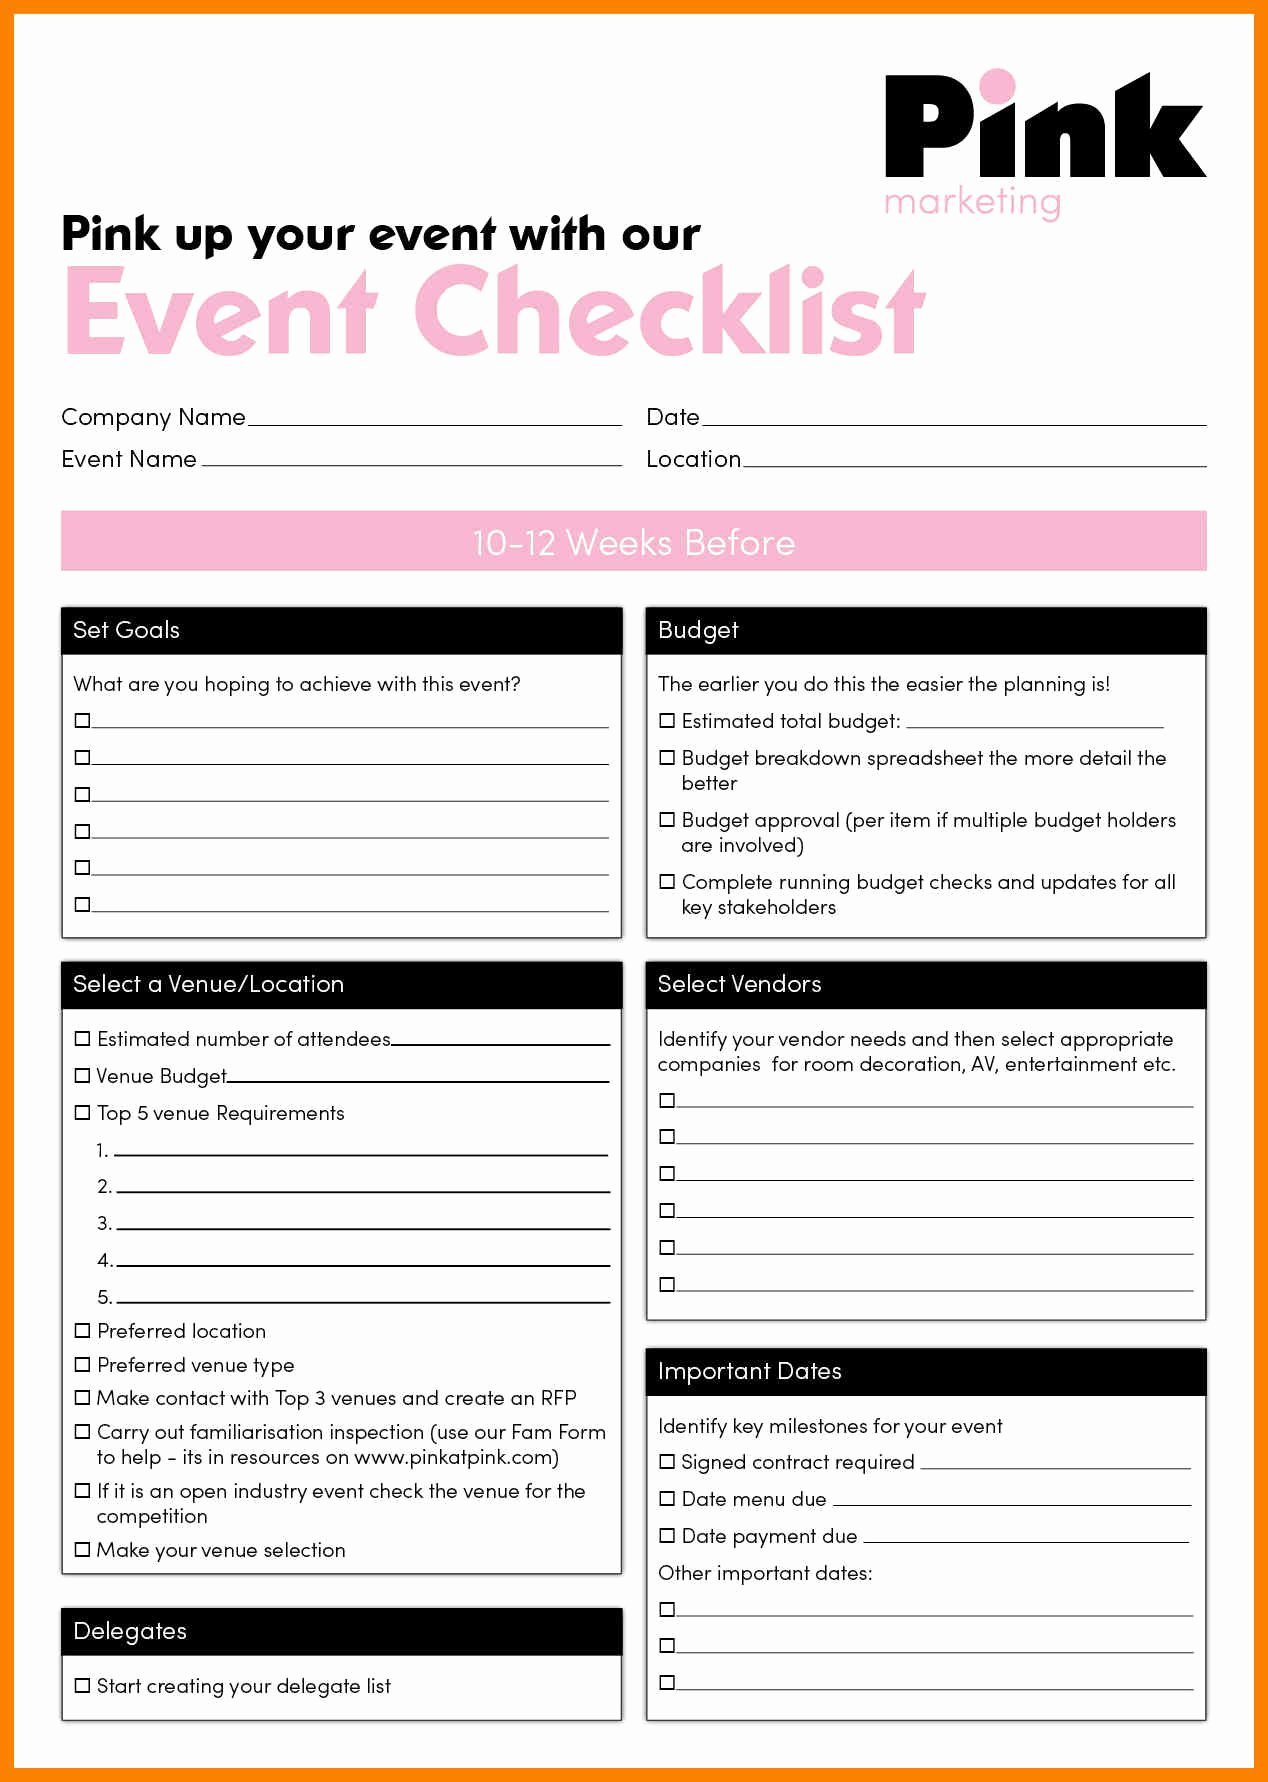 Corporate event Planning Template Luxury event Checklist event Planning Checklist event Planning